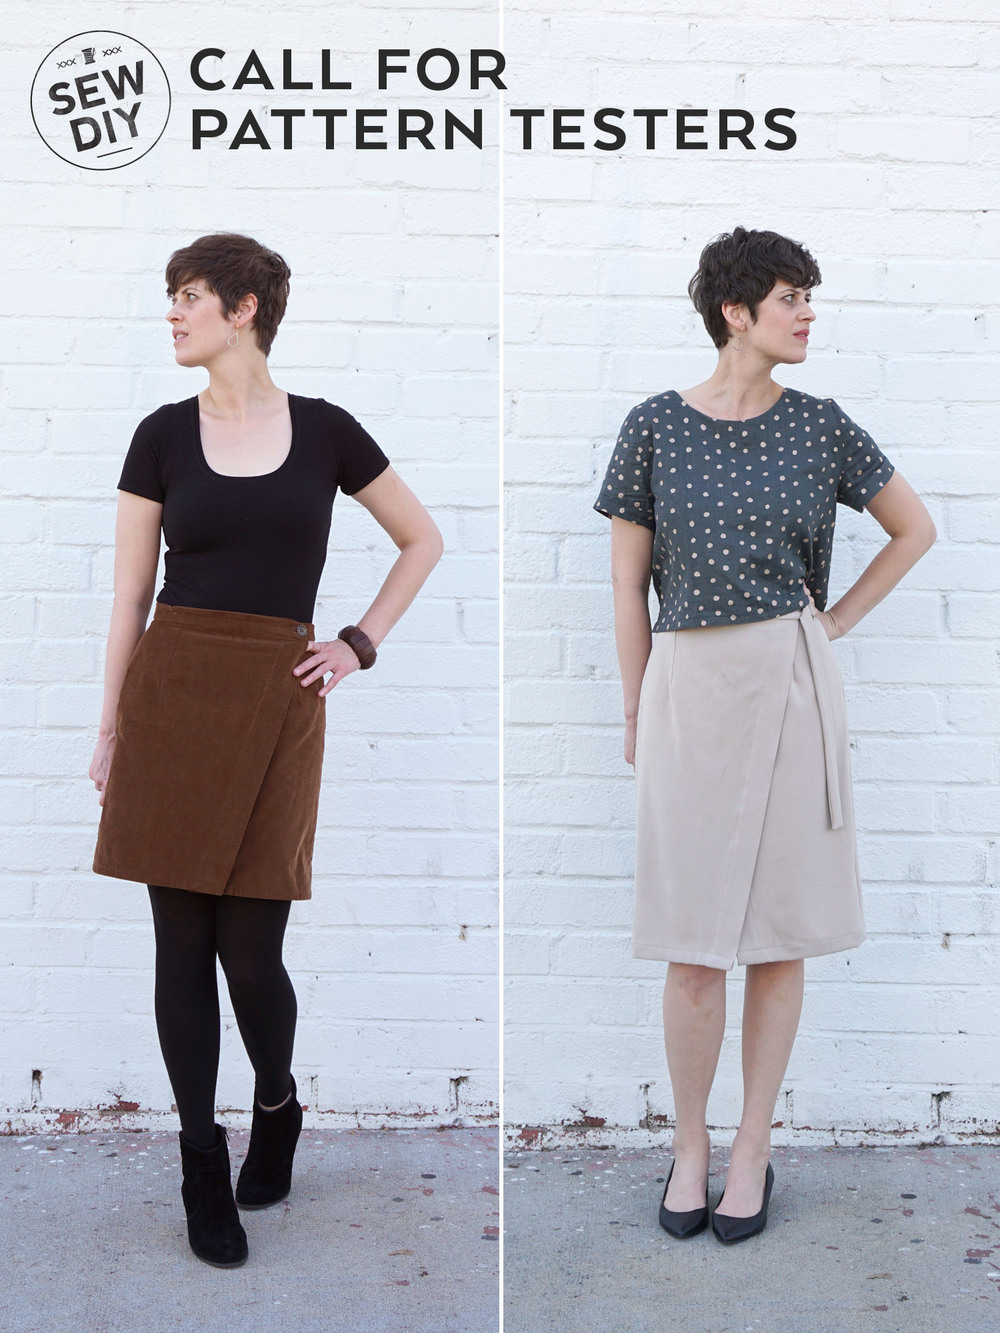 Call for Pattern Testers | Sew DIY